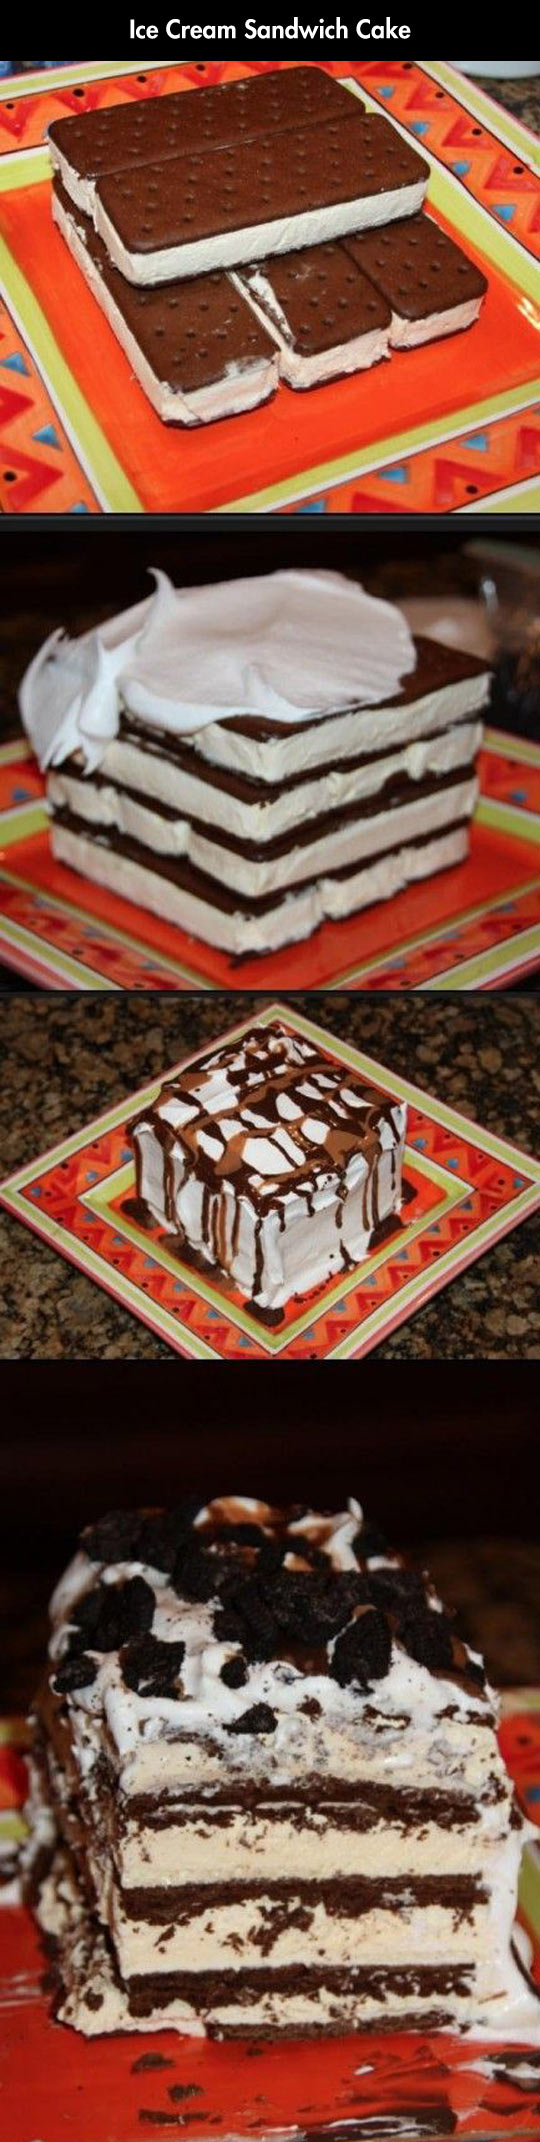 Sandwich Cake Is The Best Type Of Cake